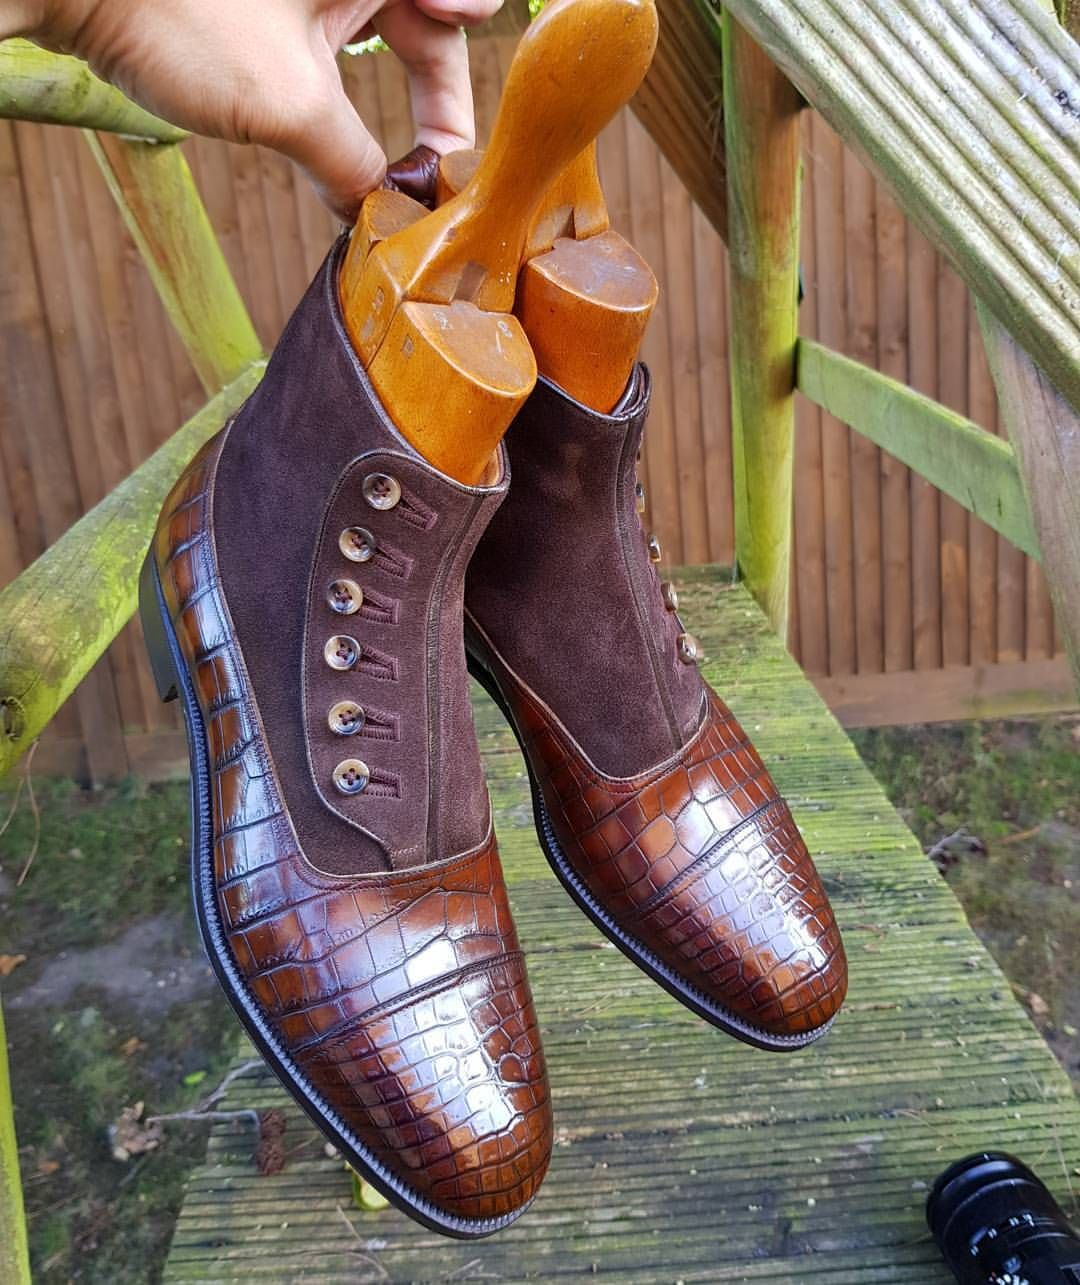 Enzo Bonafe button boots with Antique boots trees - Grade A Crocodile skin.  send us your offers if your a size US9 6422270bb